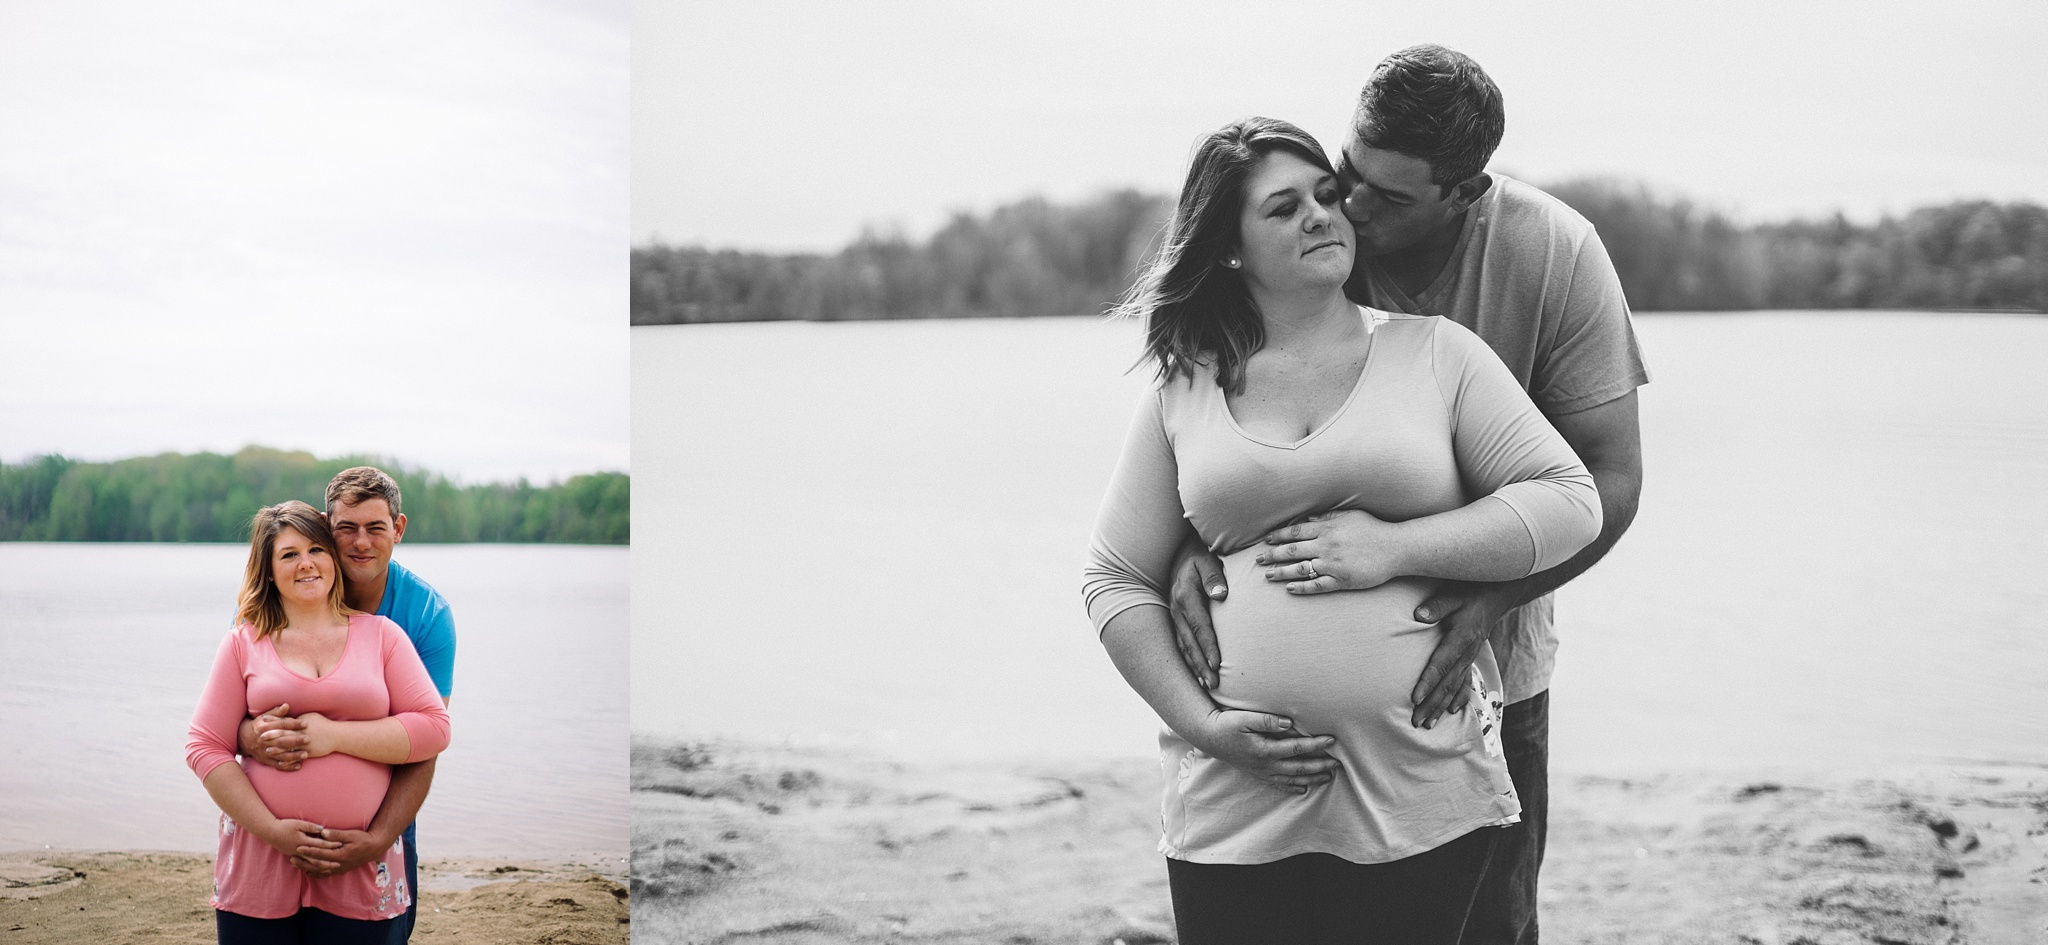 Shelby Chari Photography | South Bend Portrait Photographer | Maternity Photos